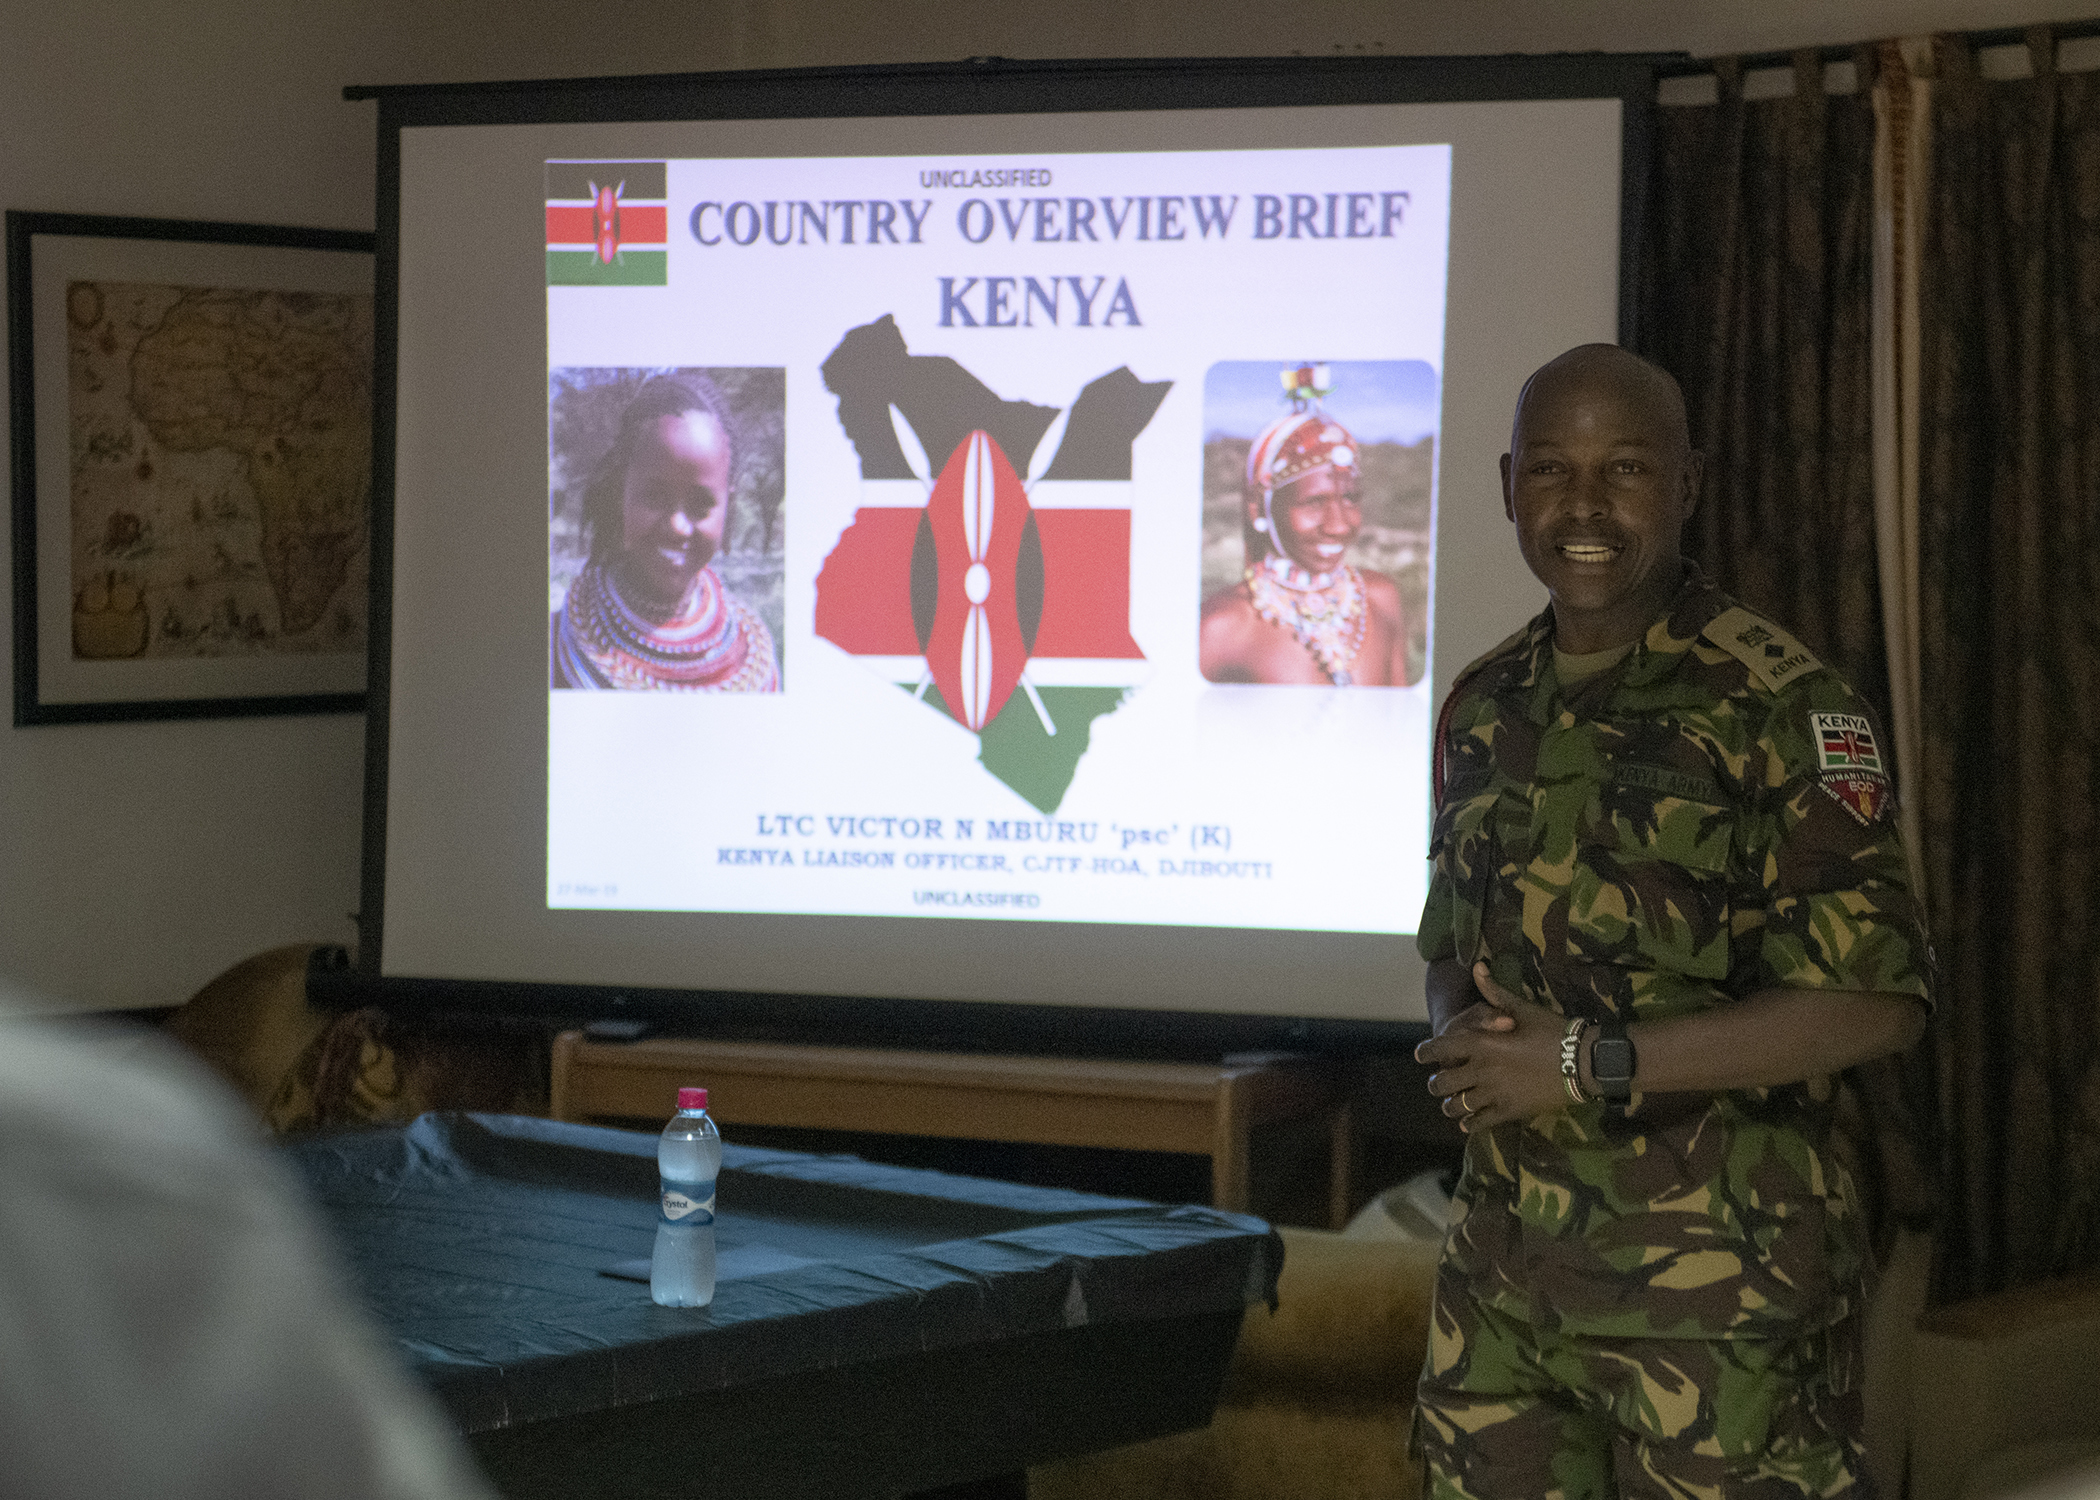 Kenya Defence Force Lt. Col. Victor Mburu, a foreign liaison officer assigned to Combined Joint Task Force-Horn of Africa (CJTF-HOA), presents information on his home country to multinational military partners during a cultural exchange event at Camp Lemonnier, Djibouti, March 27, 2019. CJTF-HOA holds monthly exchange events with multinational military partners affiliated with Camp Lemonnier to strengthen alliances and attract new partners in the combined joint military environment. (U.S. Air Force photo by Tech. Sgt. Shawn Nickel)